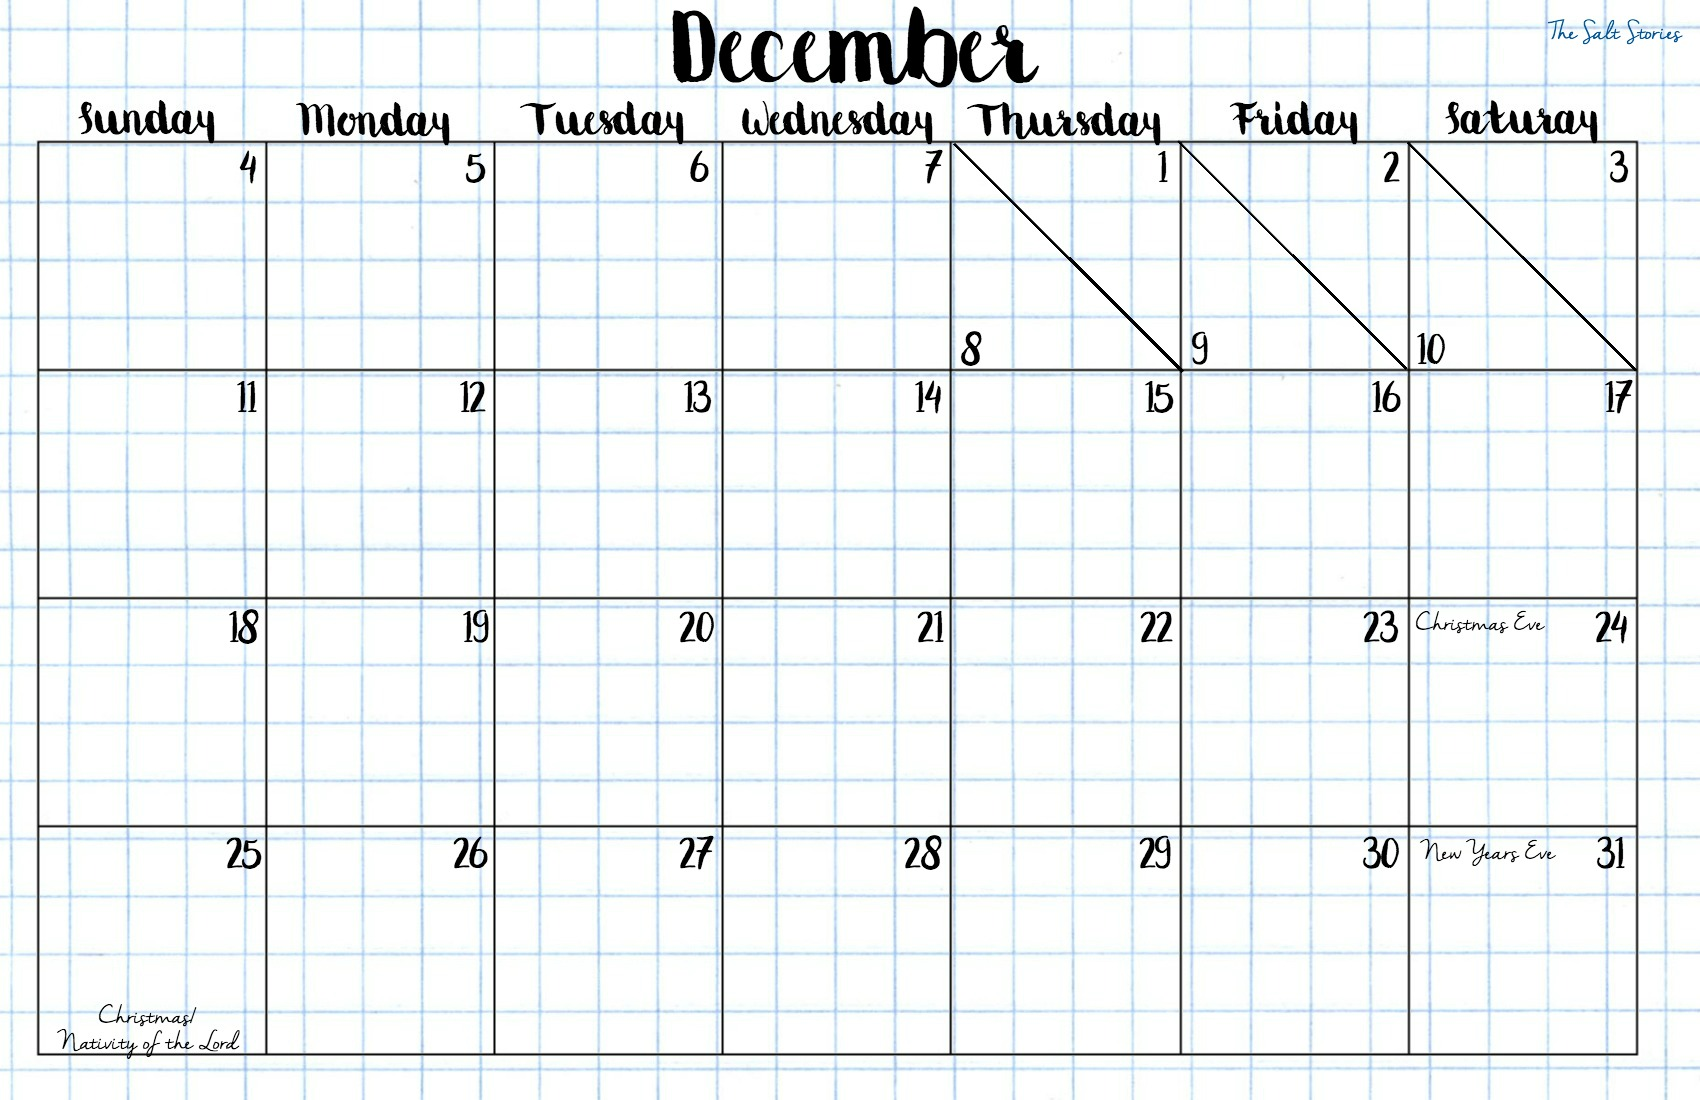 december-calendar-no-saints